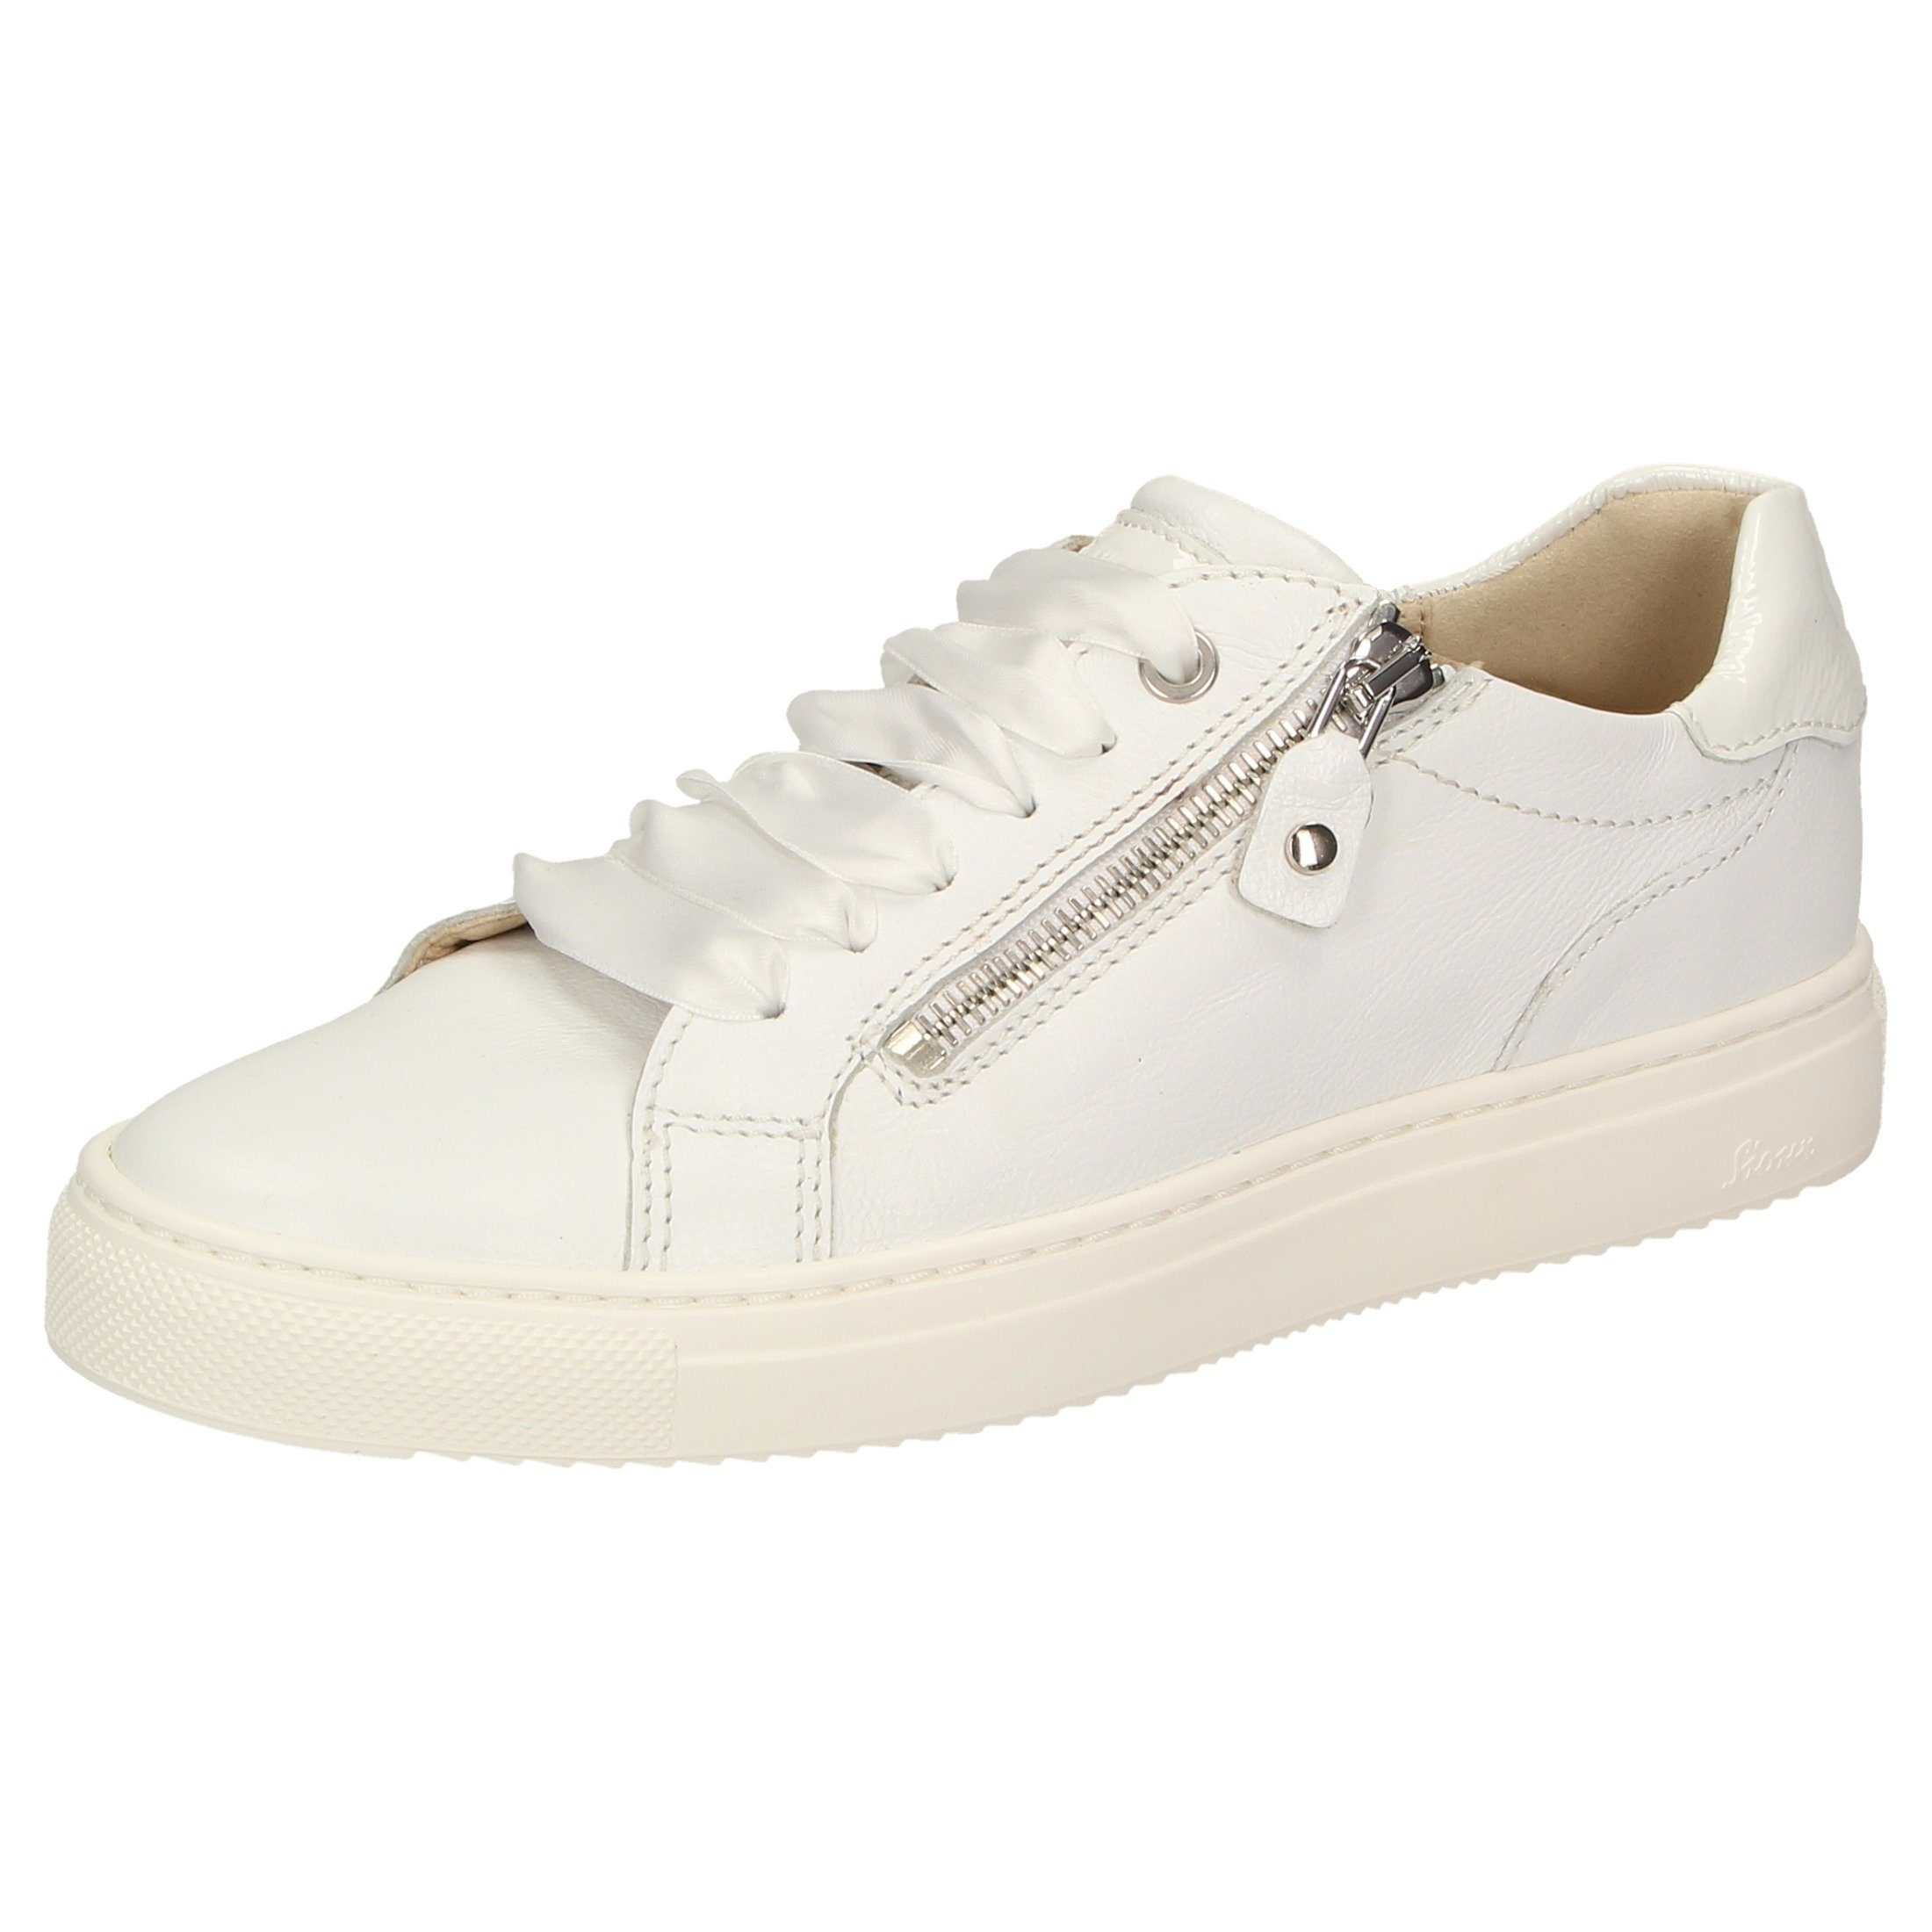 »purvesia Online Xl« KaufenOtto Sioux Sneaker 704 srQCthd